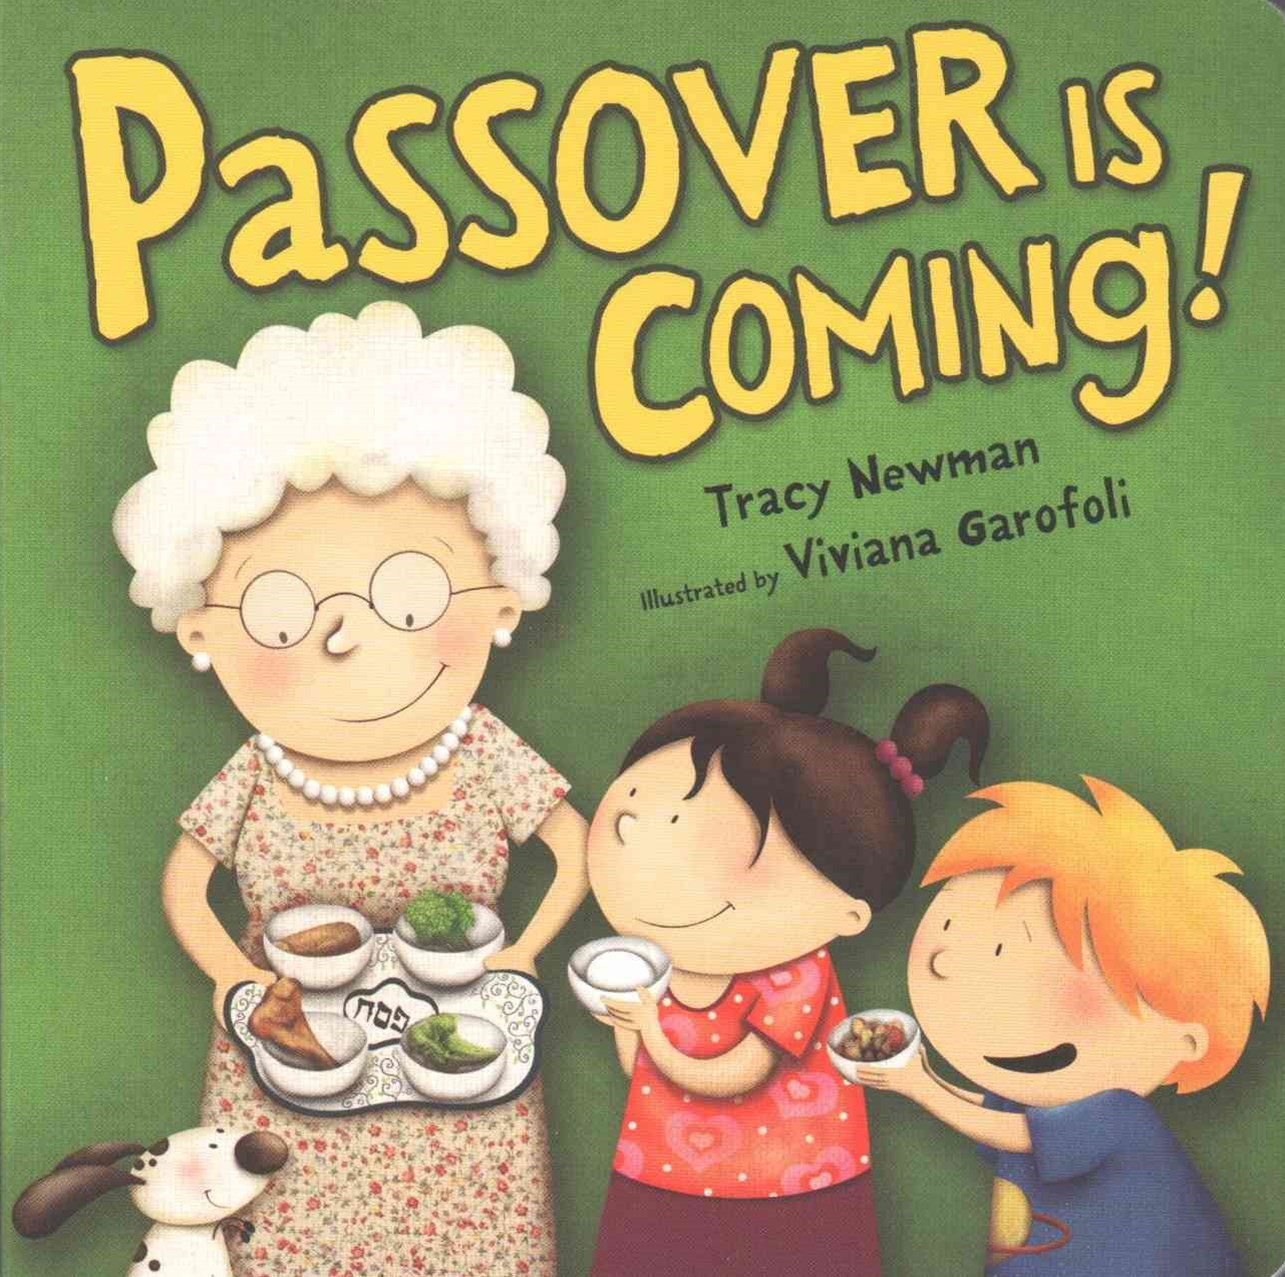 Passover Is Coming!